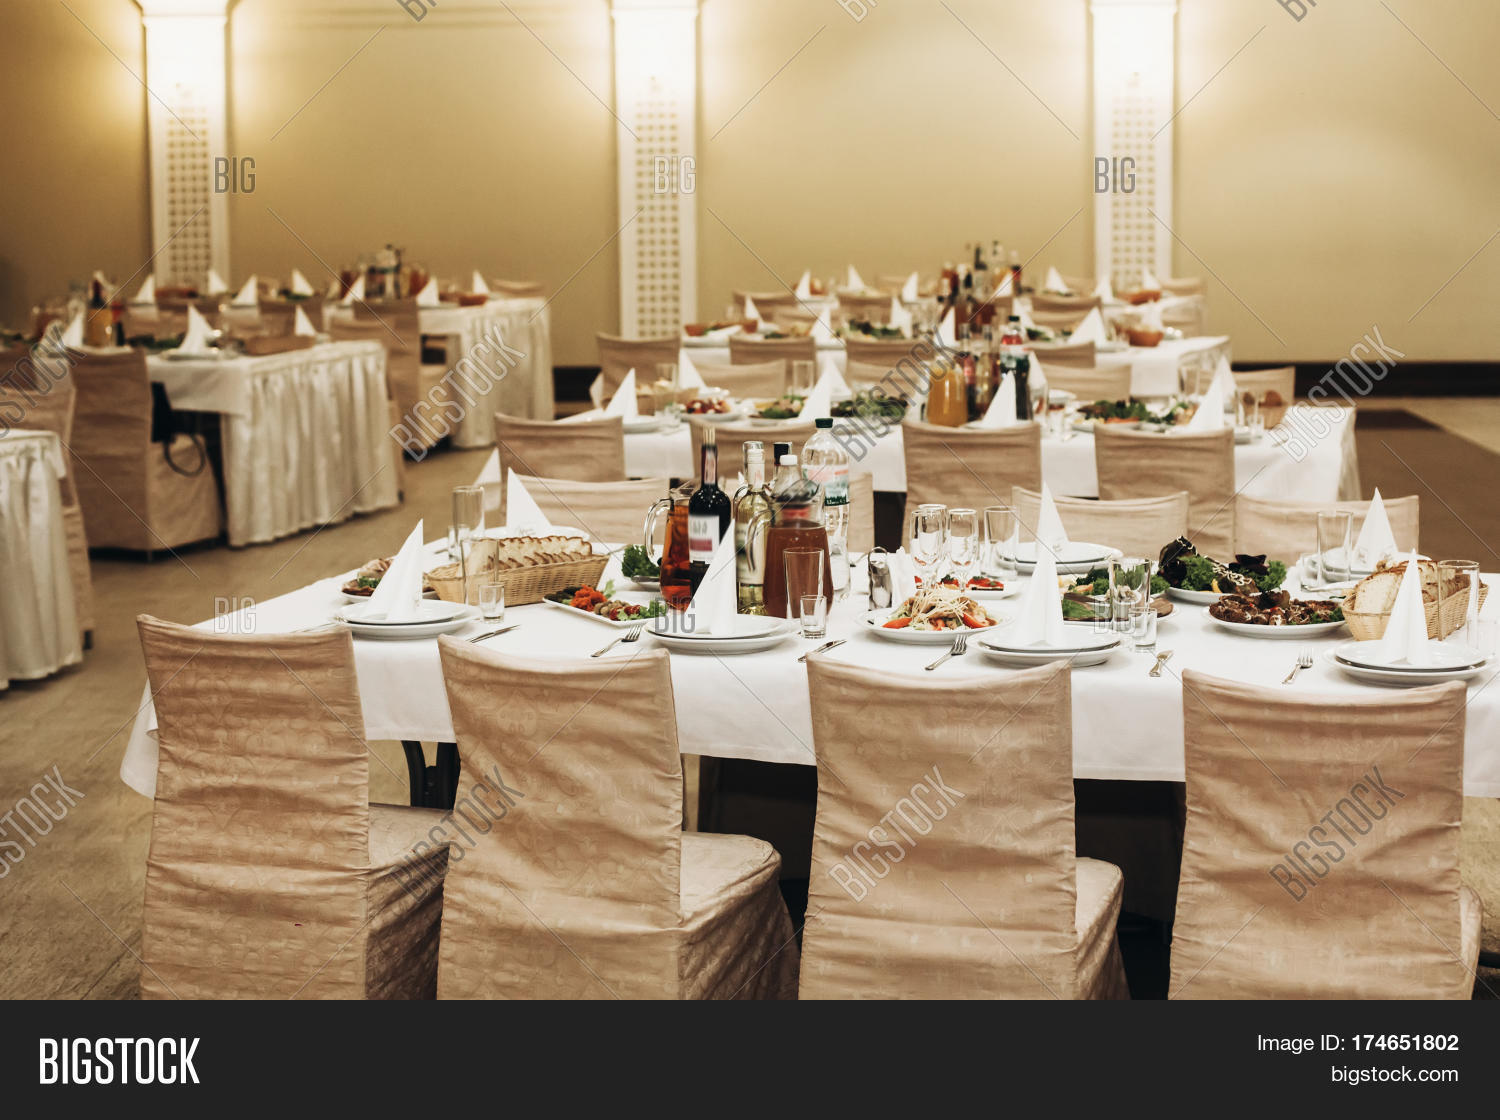 luxury business dinner reception at expensive restaurant with